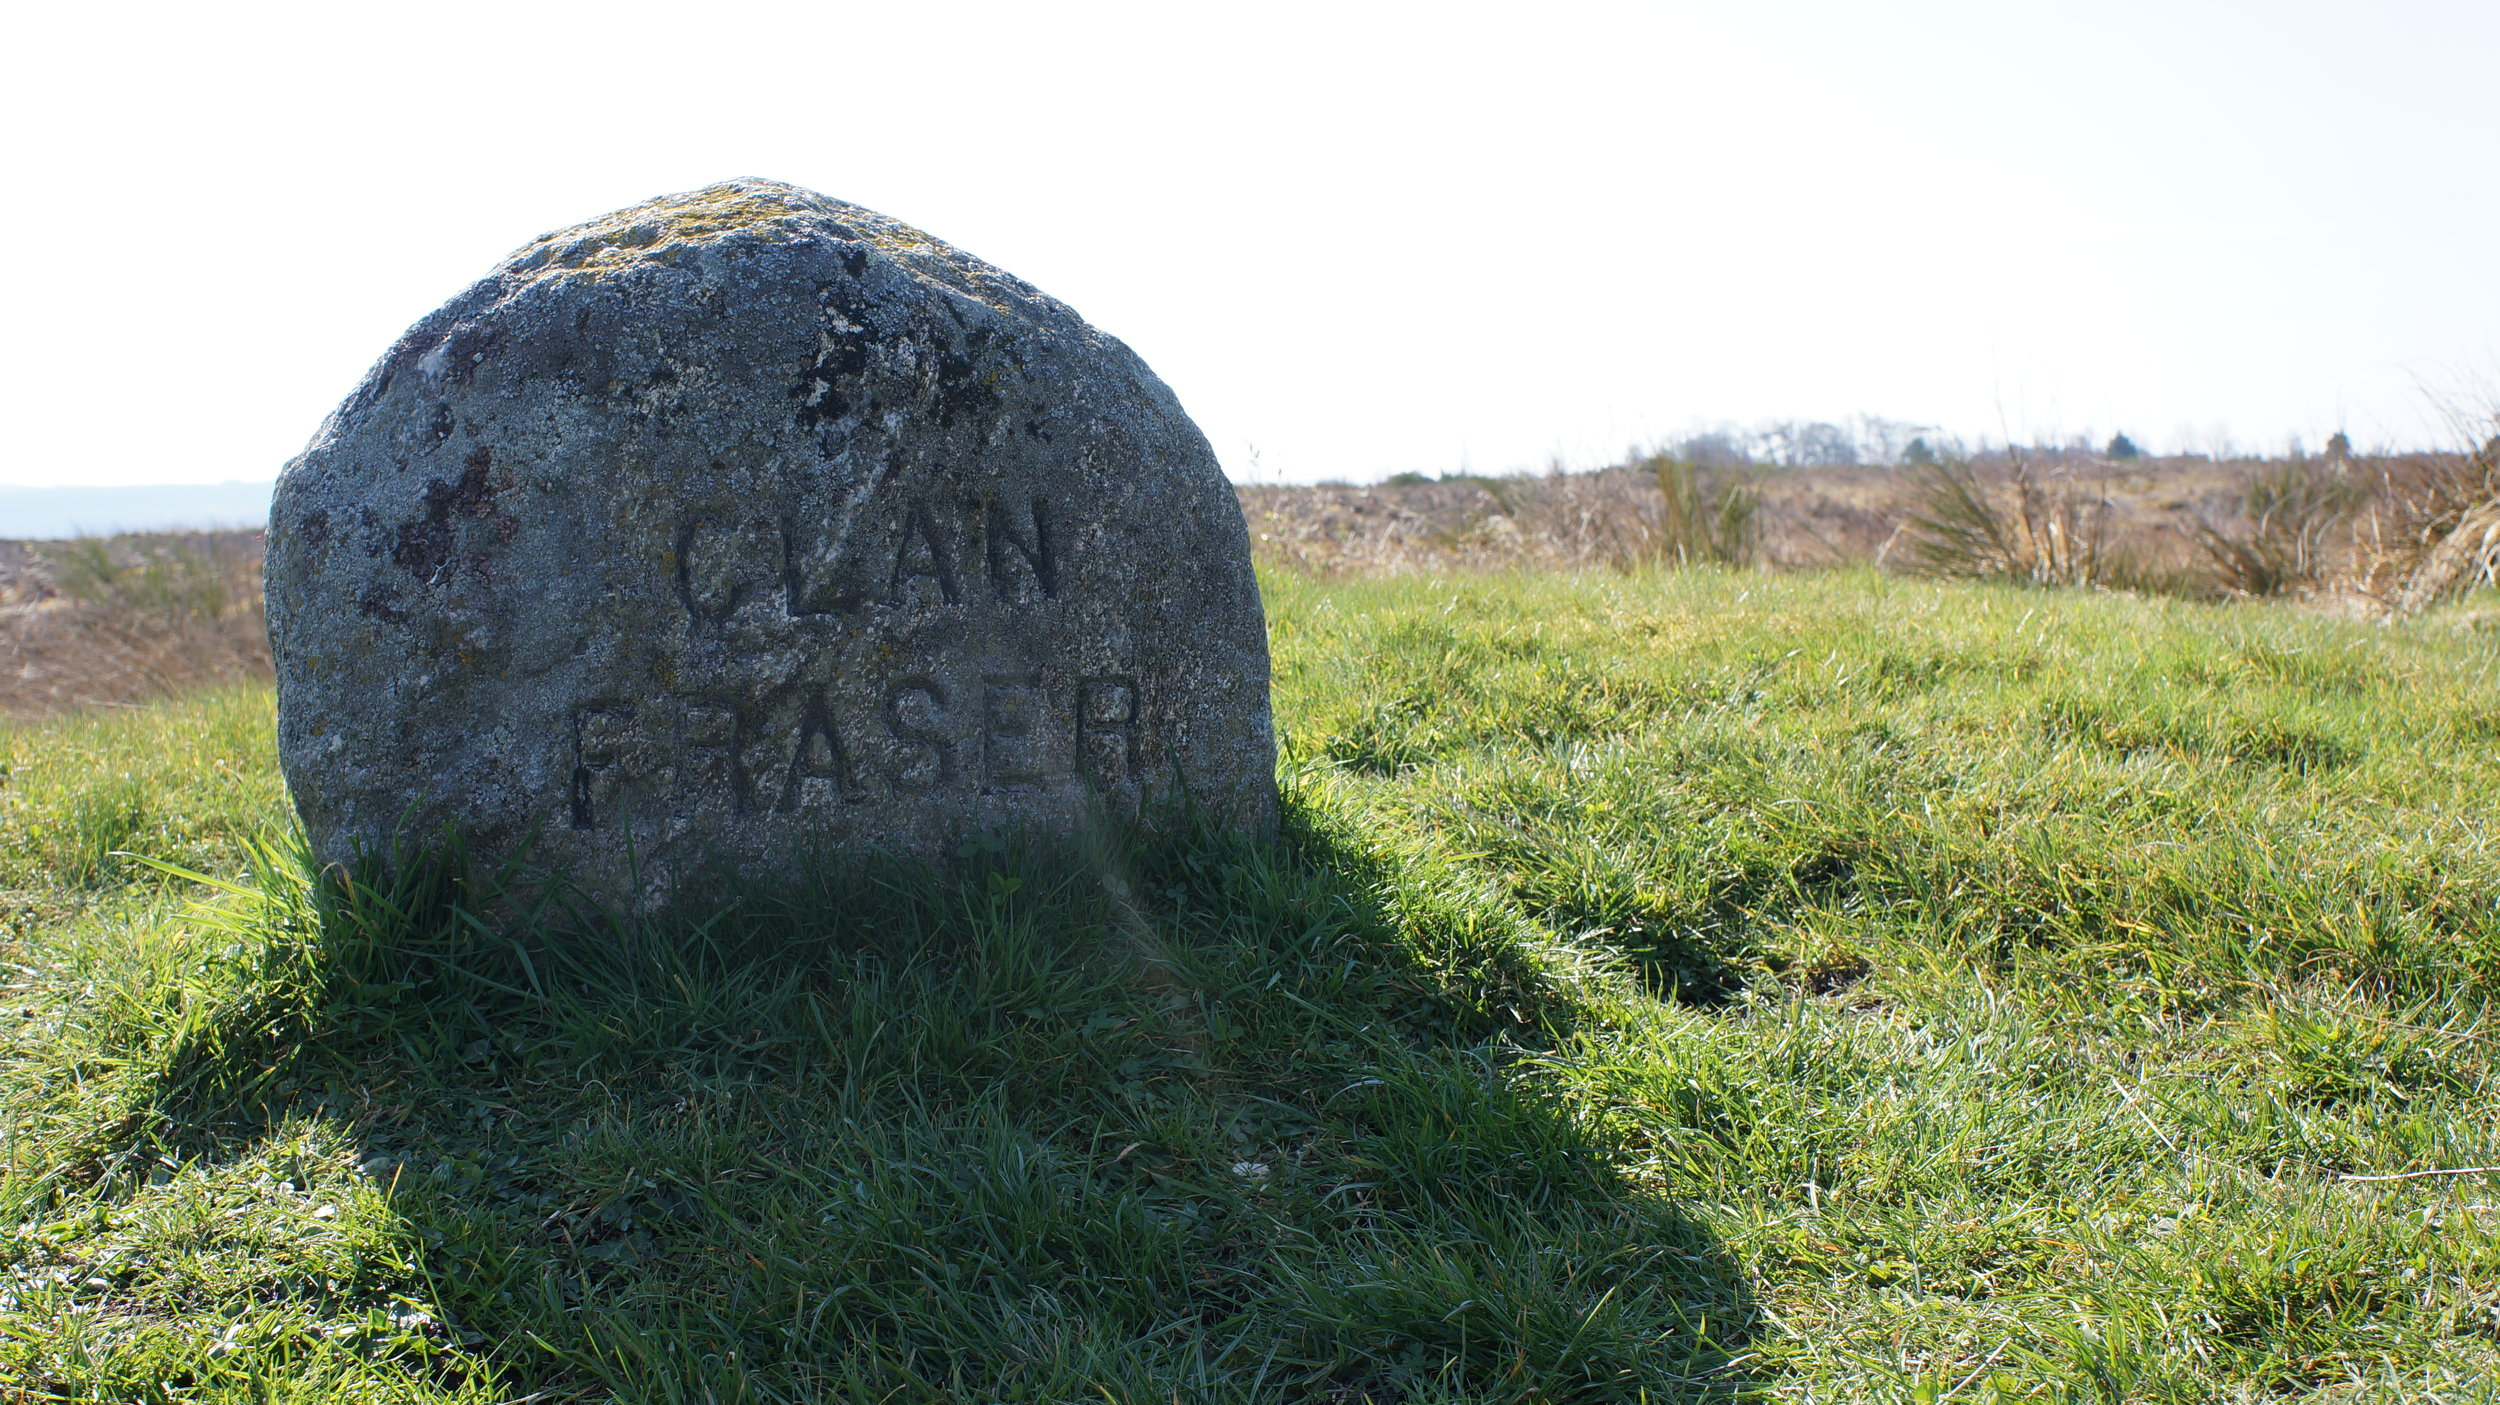 The Fraser stone 5 years ago.